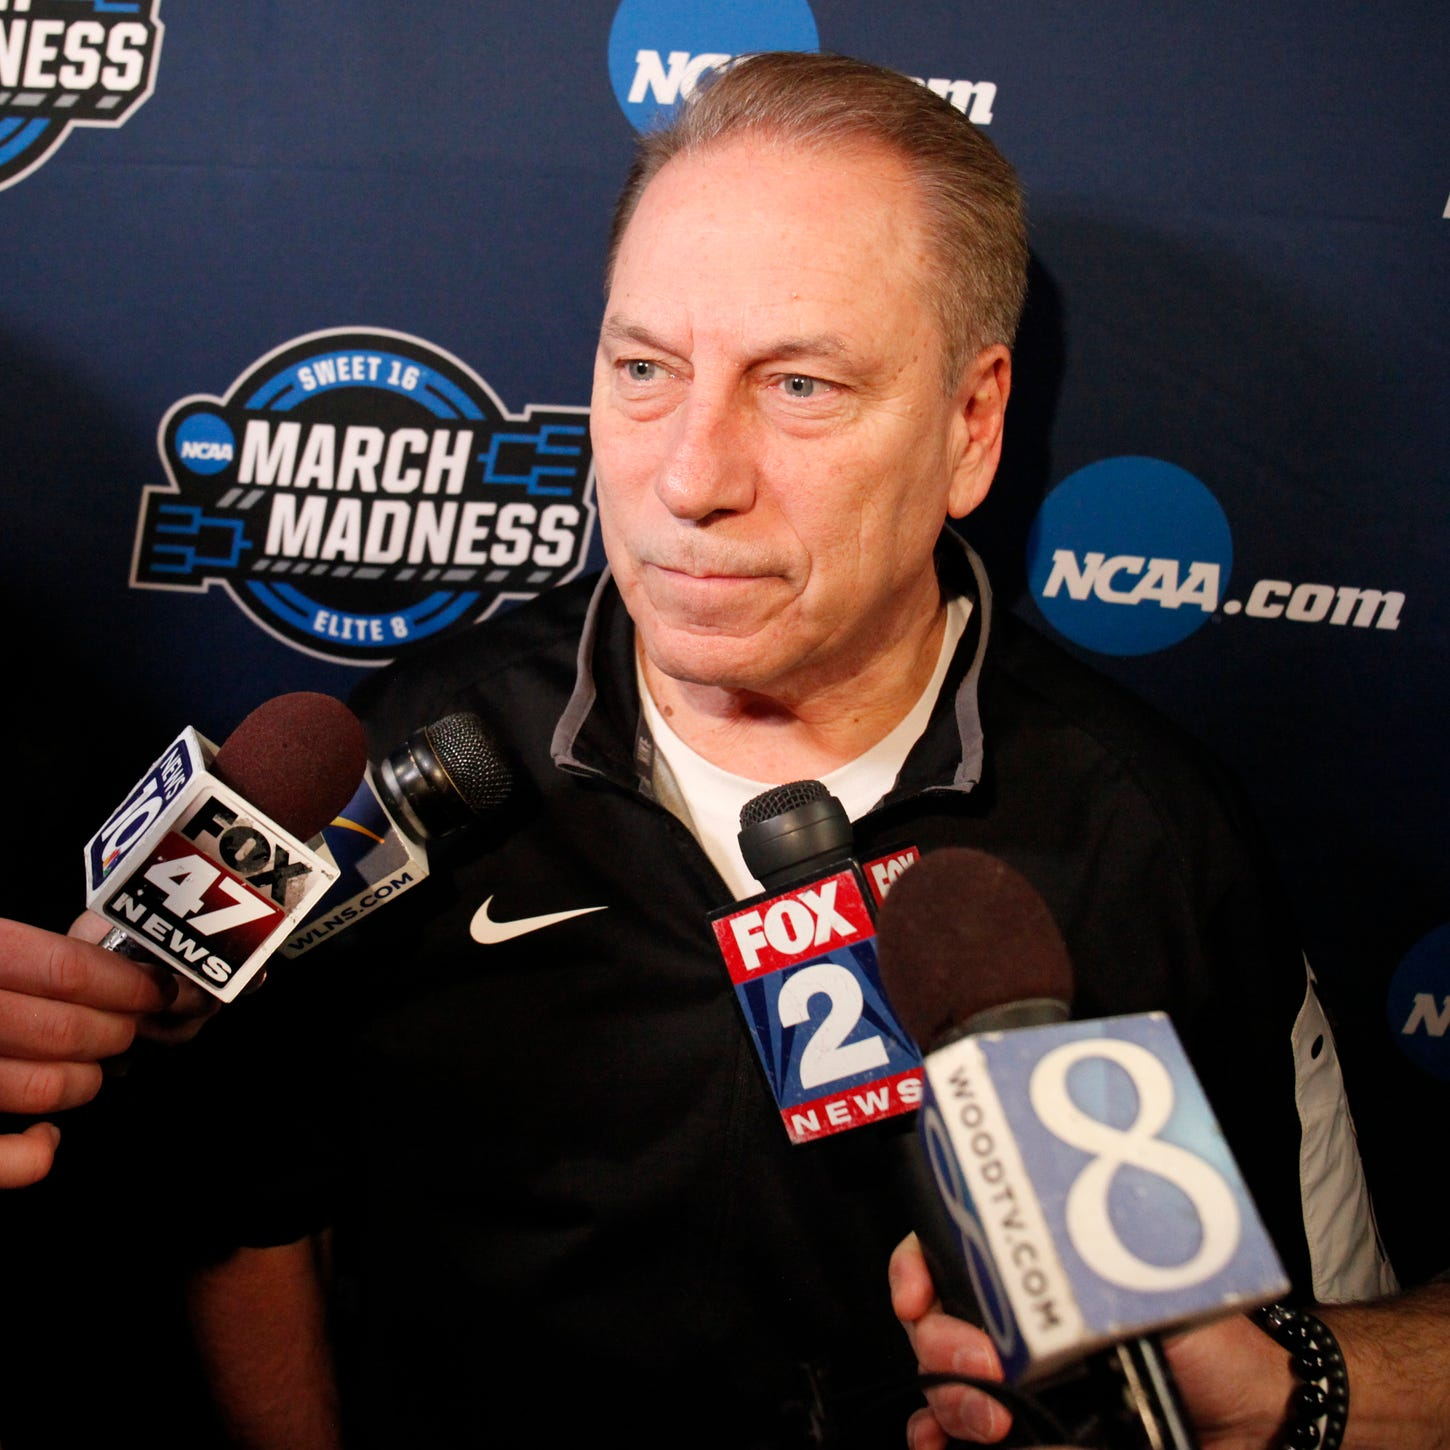 What Michigan State's Tom Izzo said about Sweet 16 foe LSU